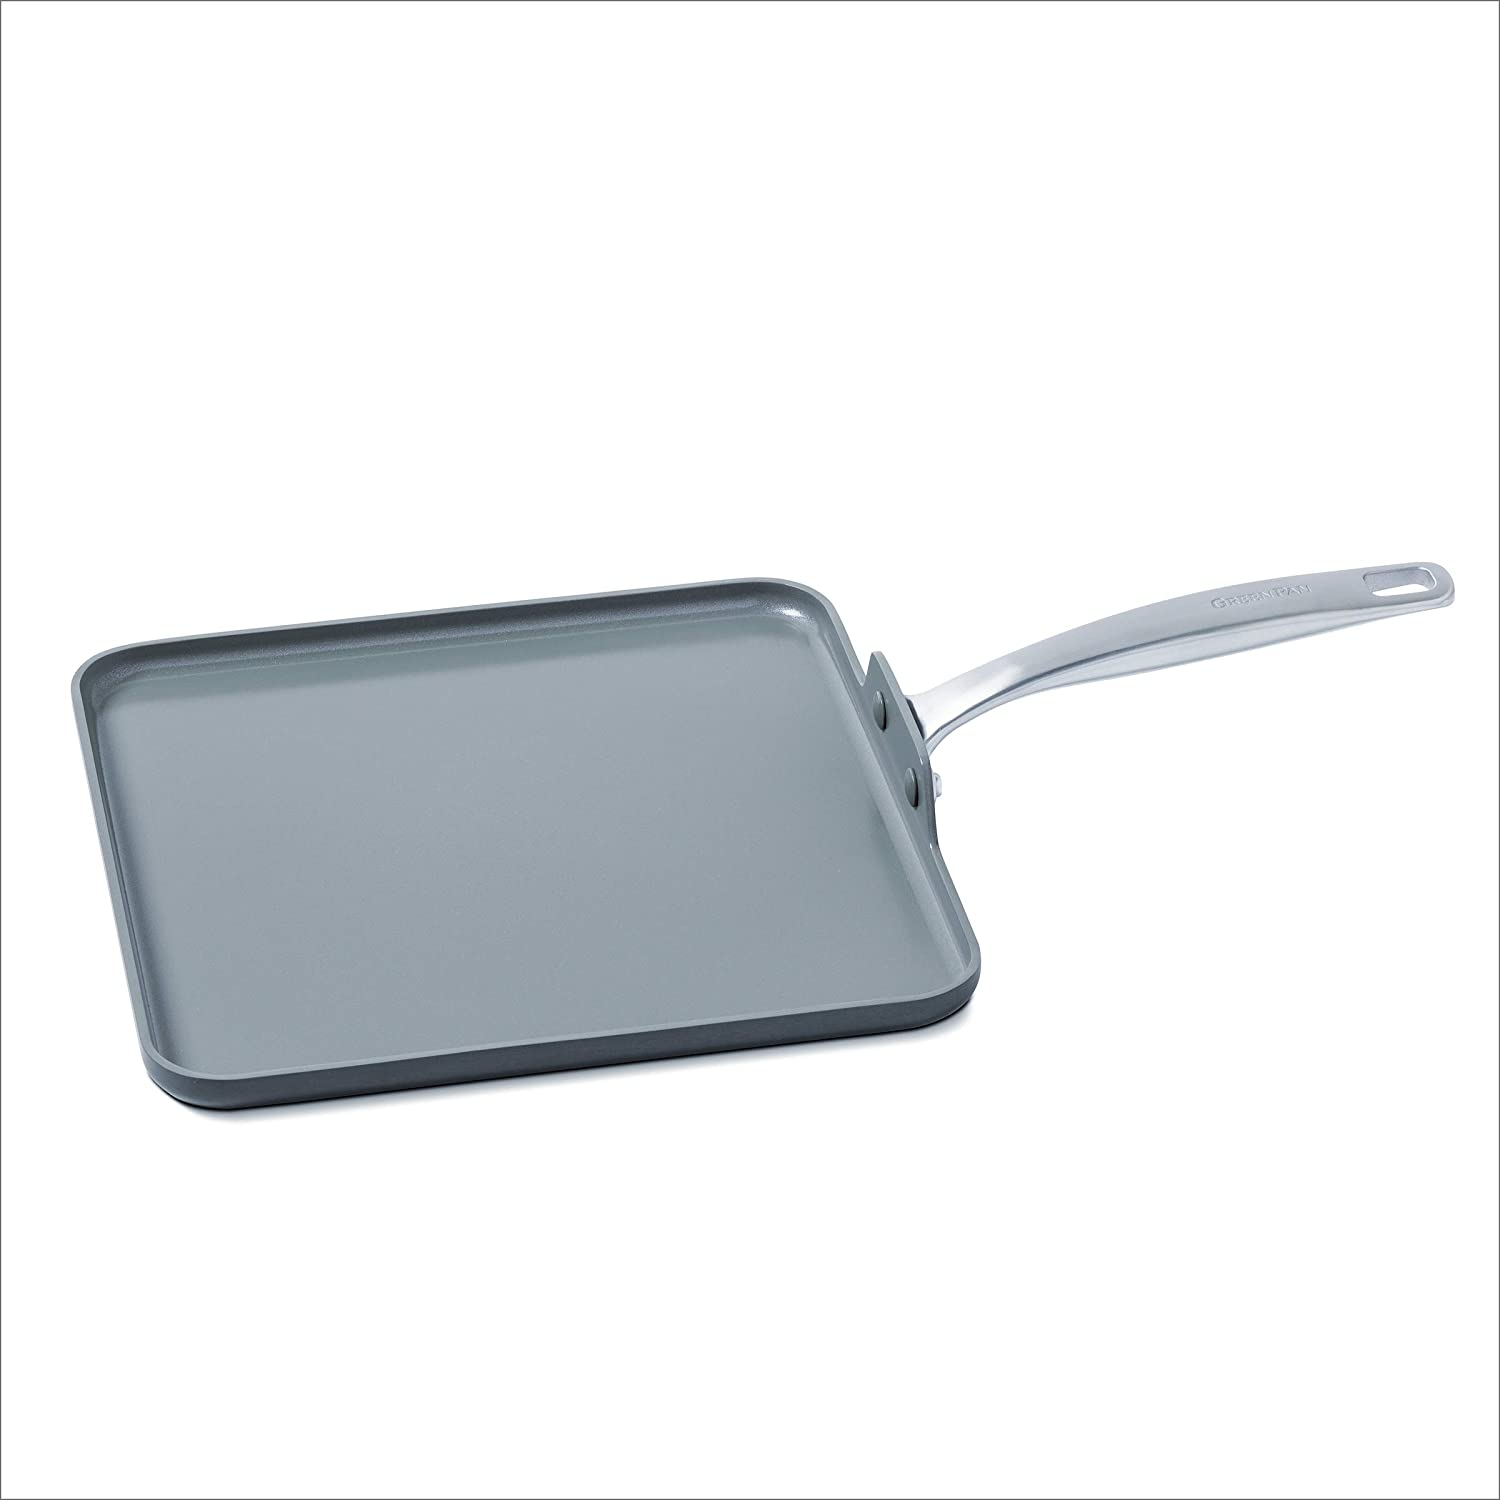 "GreenPan Chatham 11"" Ceramic Non-Stick Square Griddle, Grey"